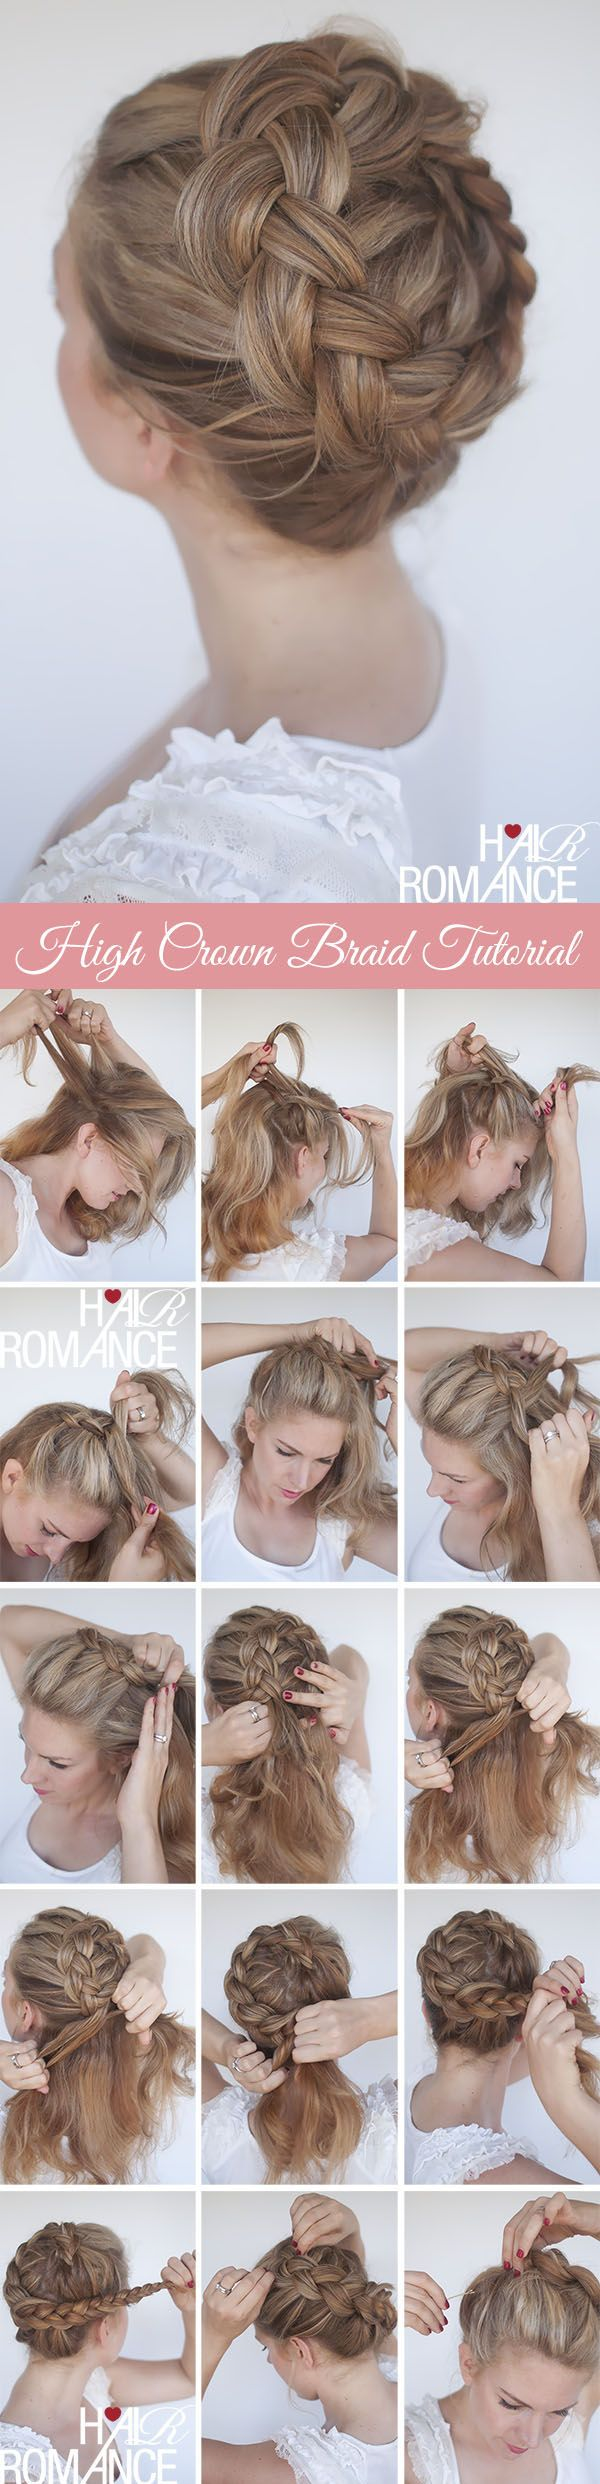 The 11 Best Braid Tutorials - From Boho chic braids to wedding waterfall braids, these meticulously twisted hairstyles are beautiful at any age